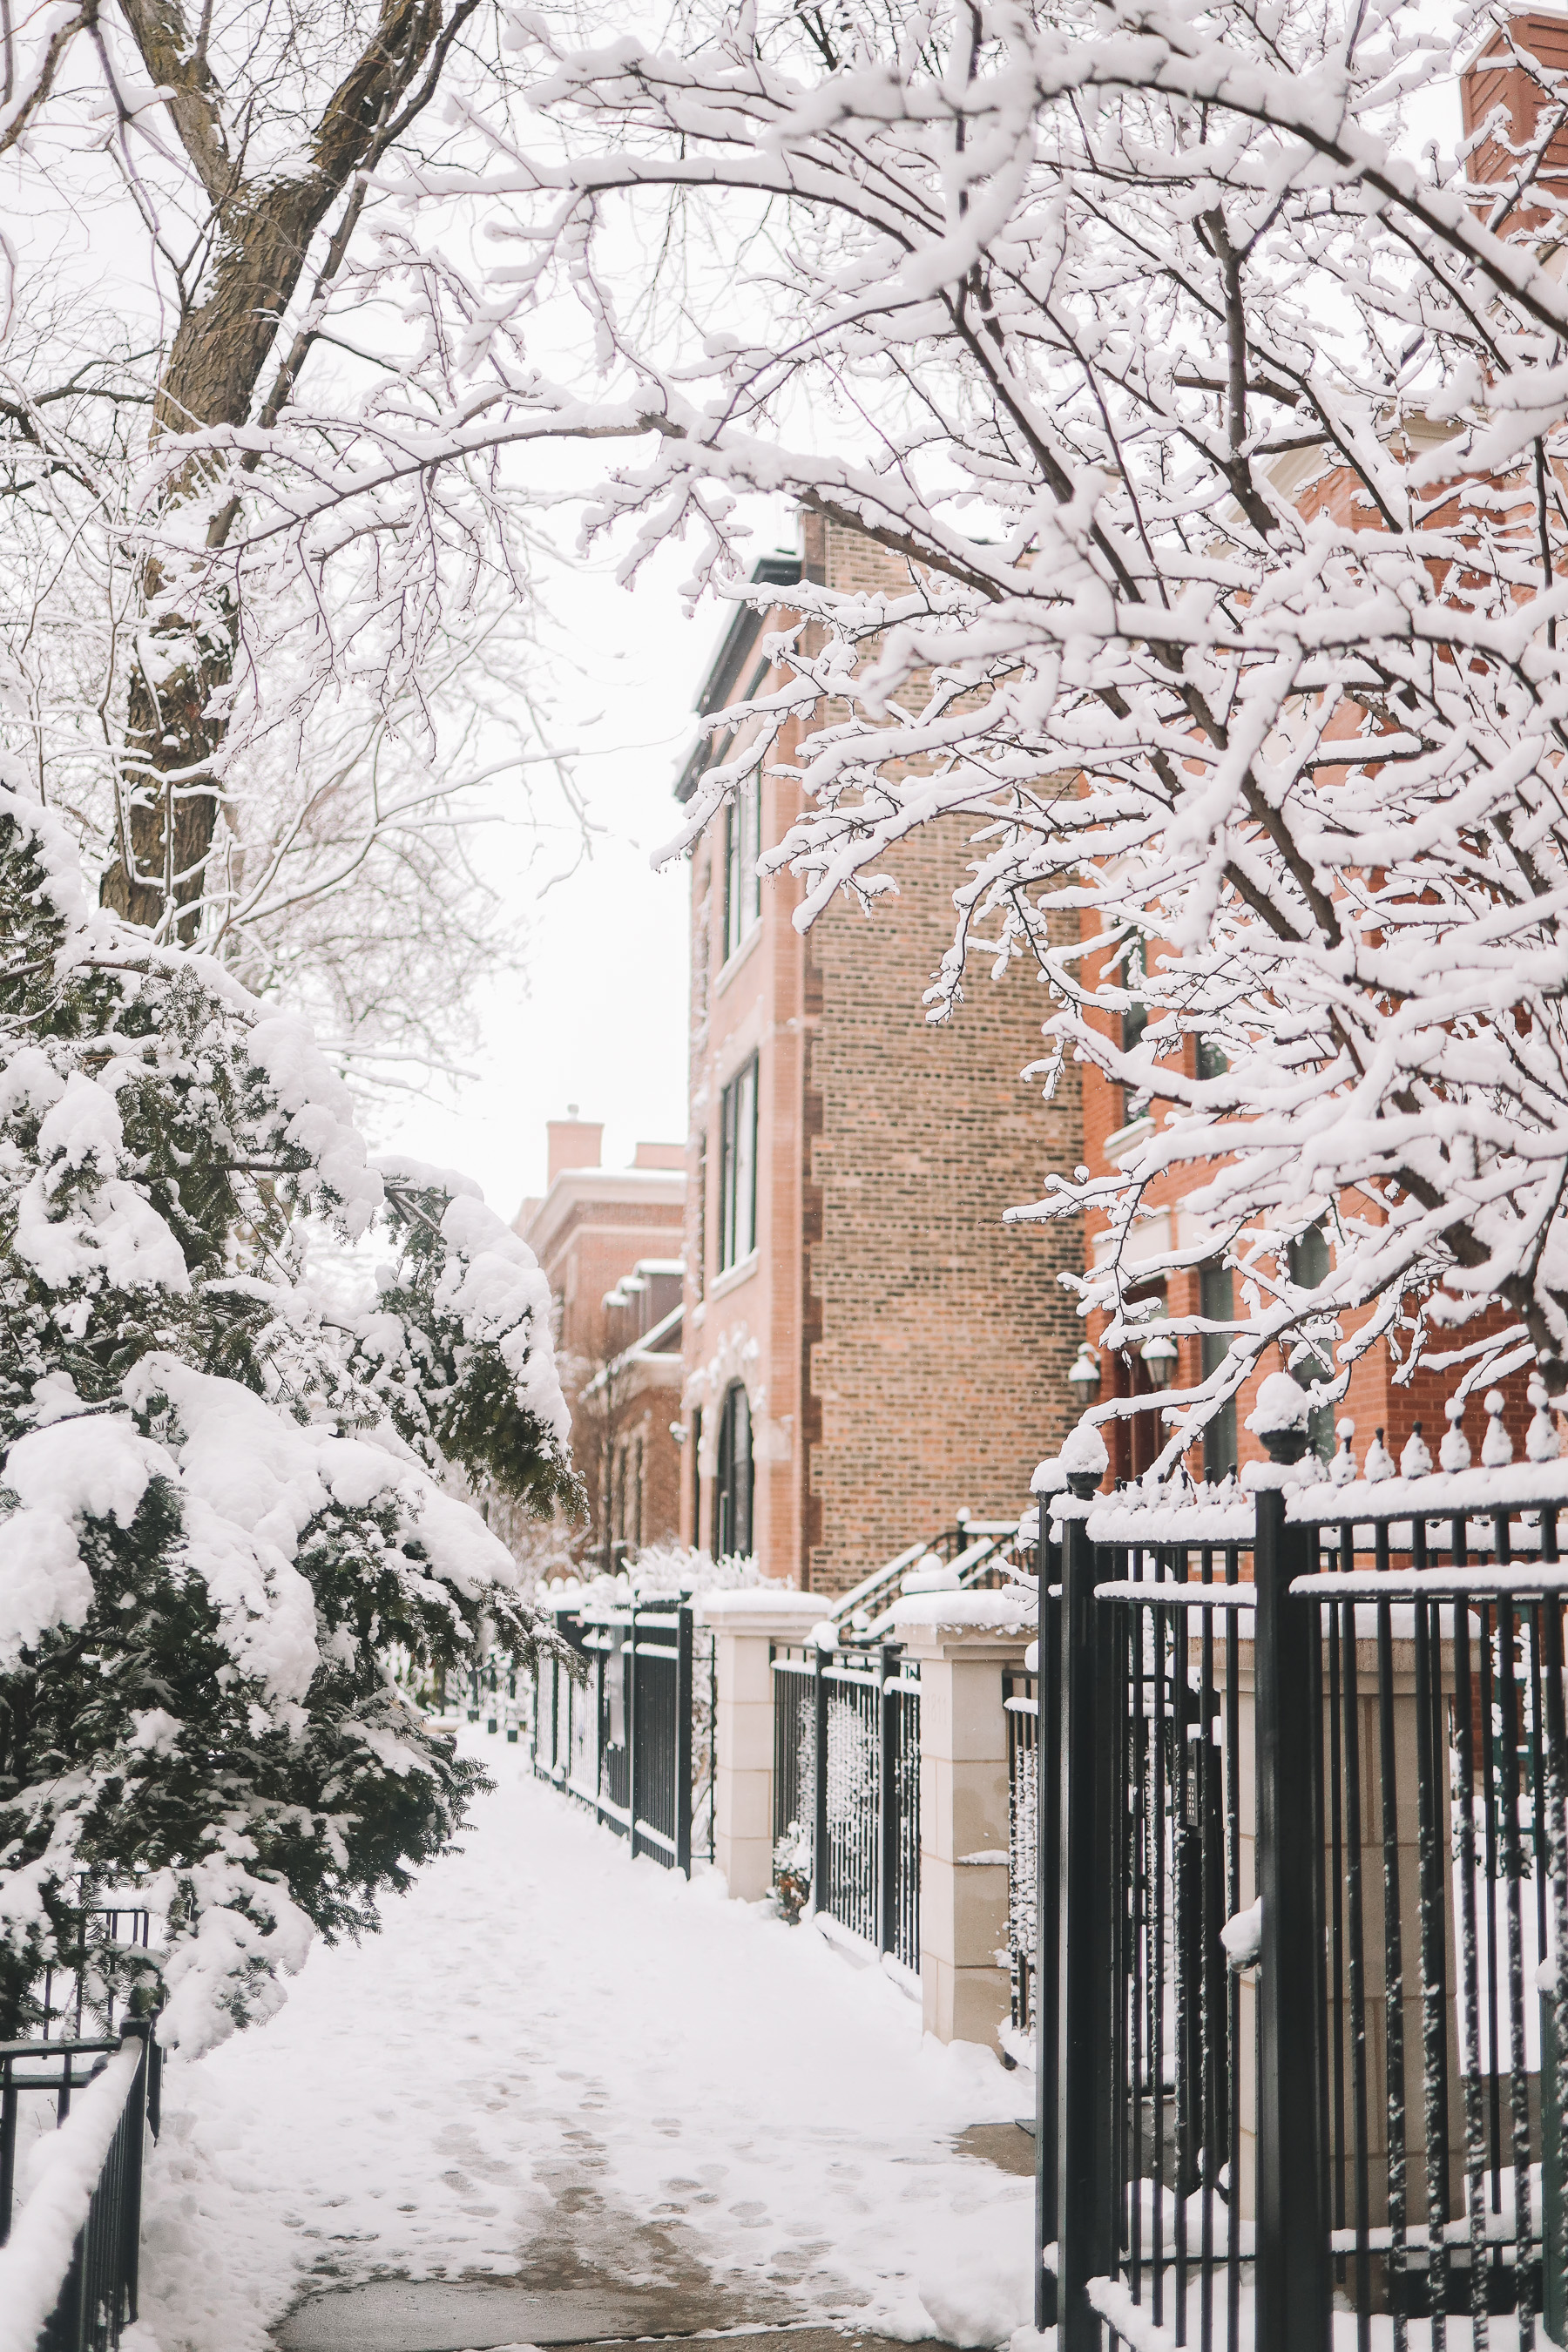 snow in chicago streets